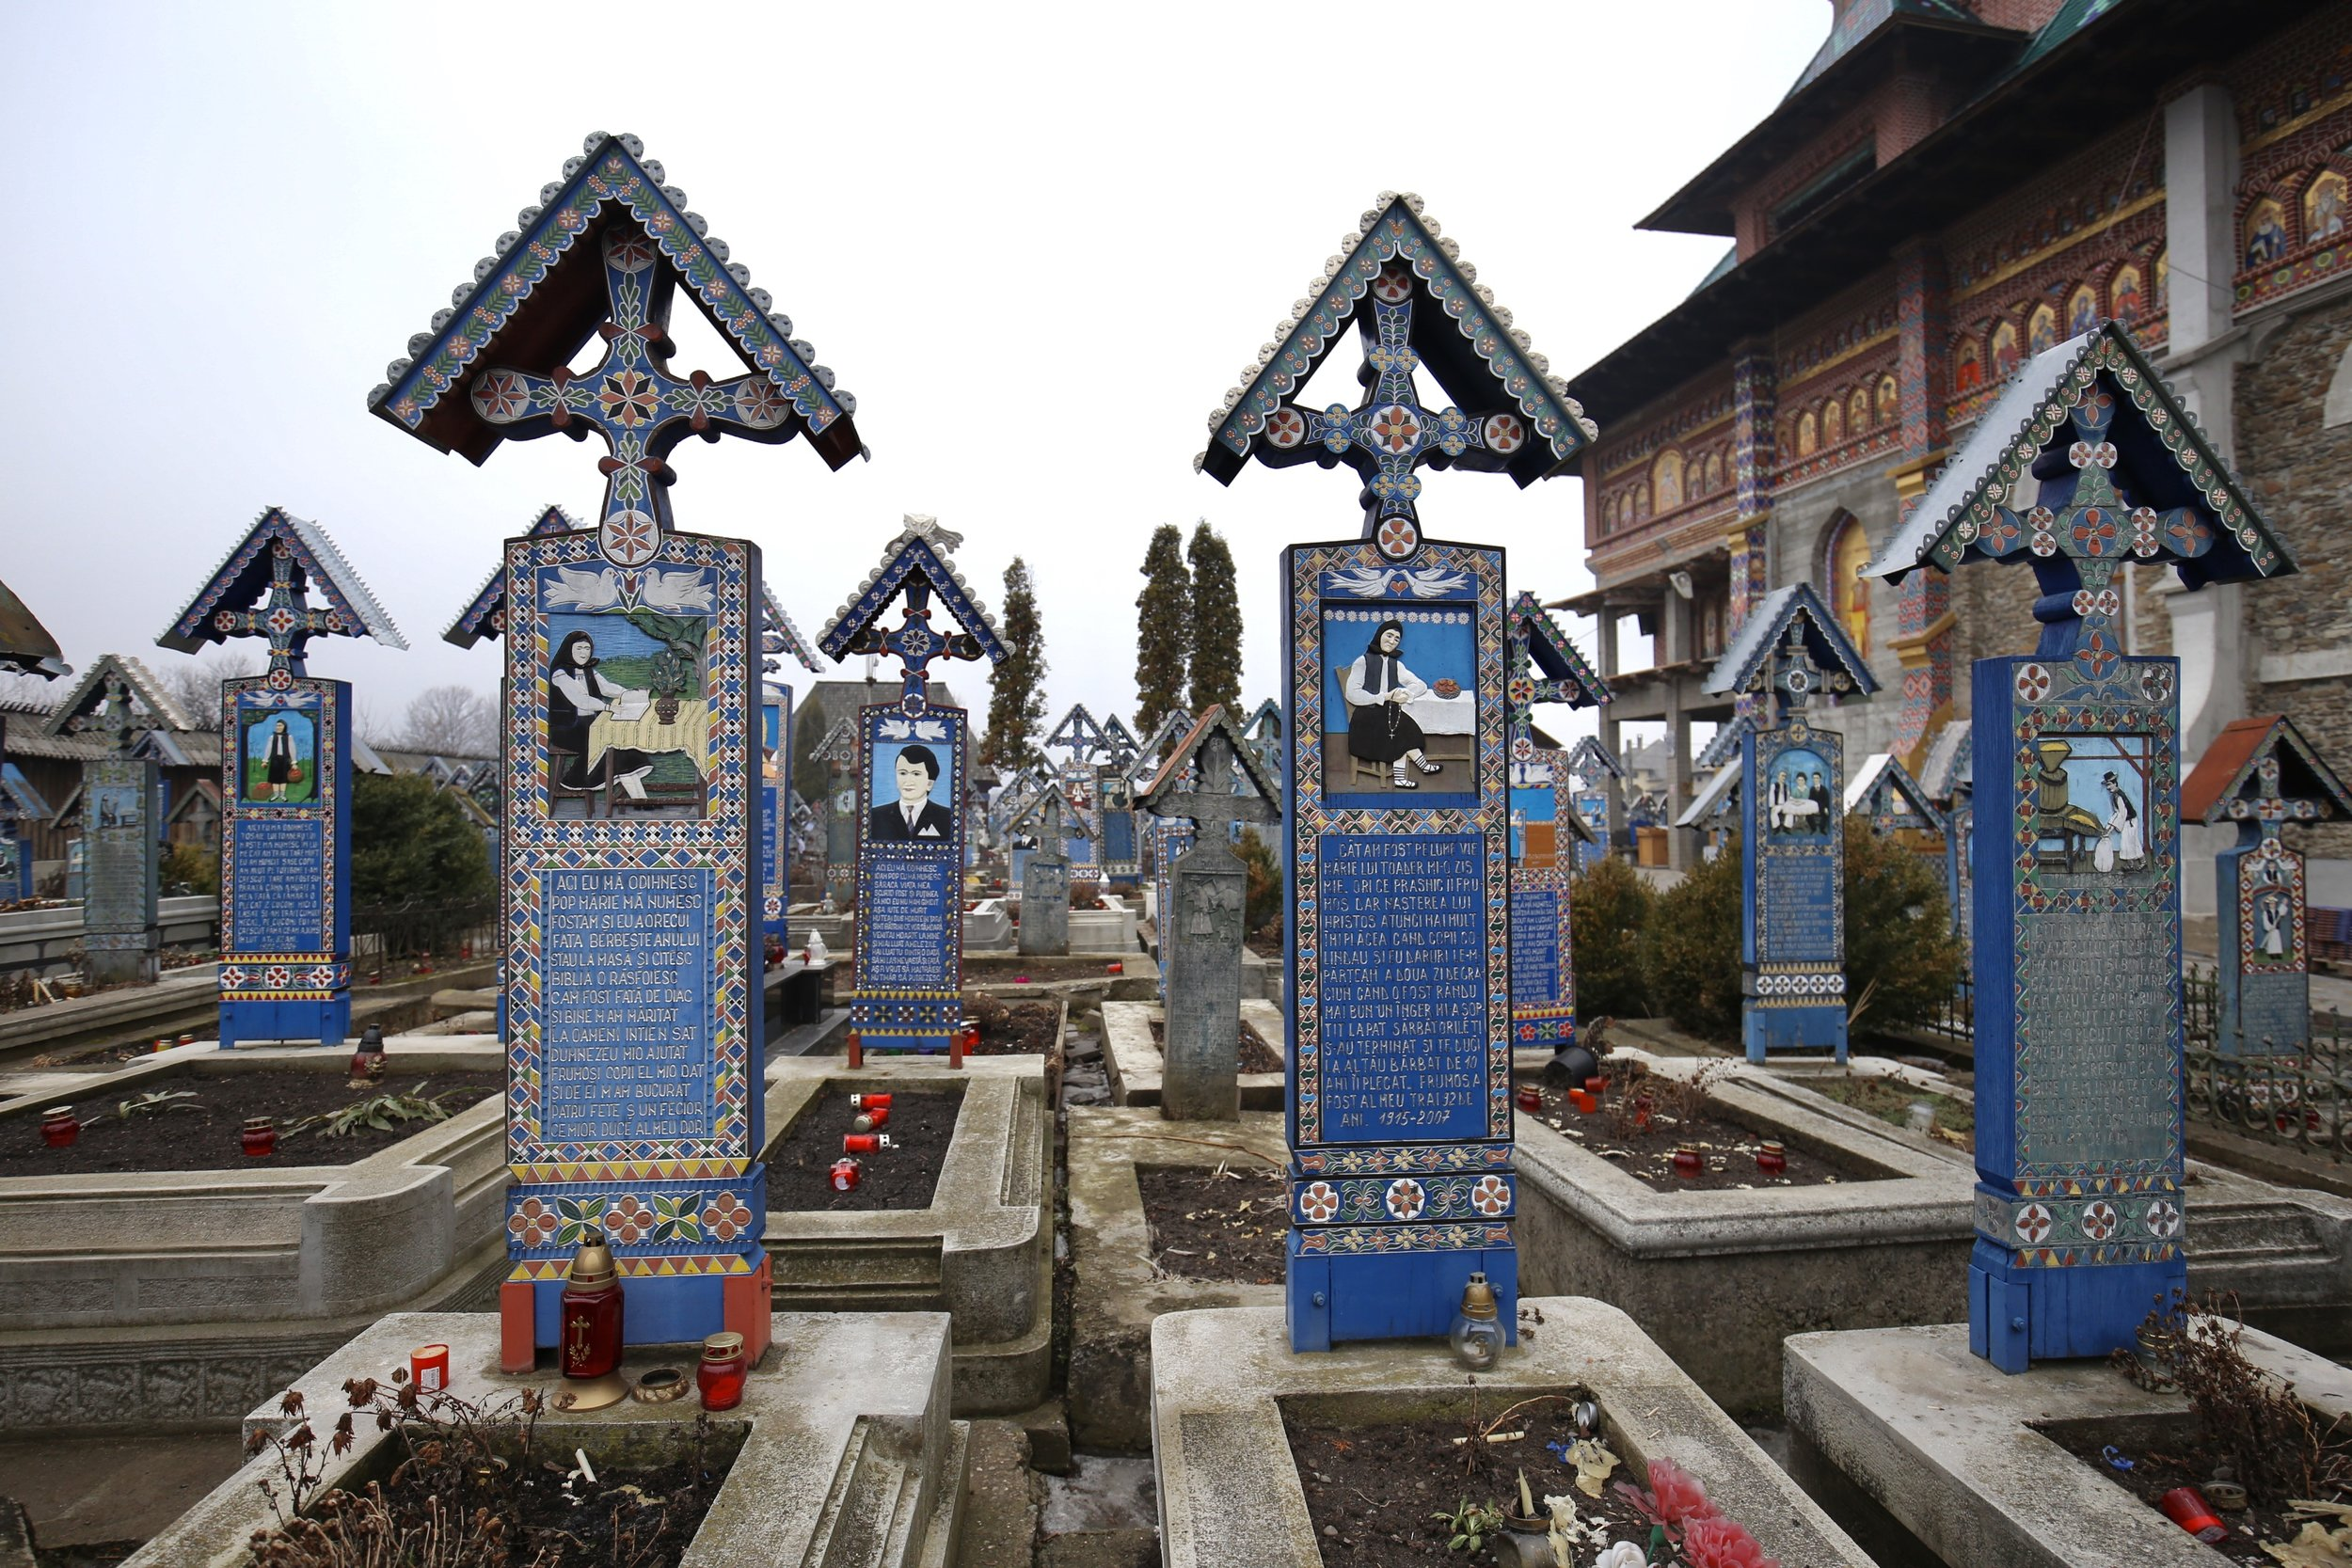 The Merry Cemetery of Sapanta - where the grave markers are painted with colourful images.